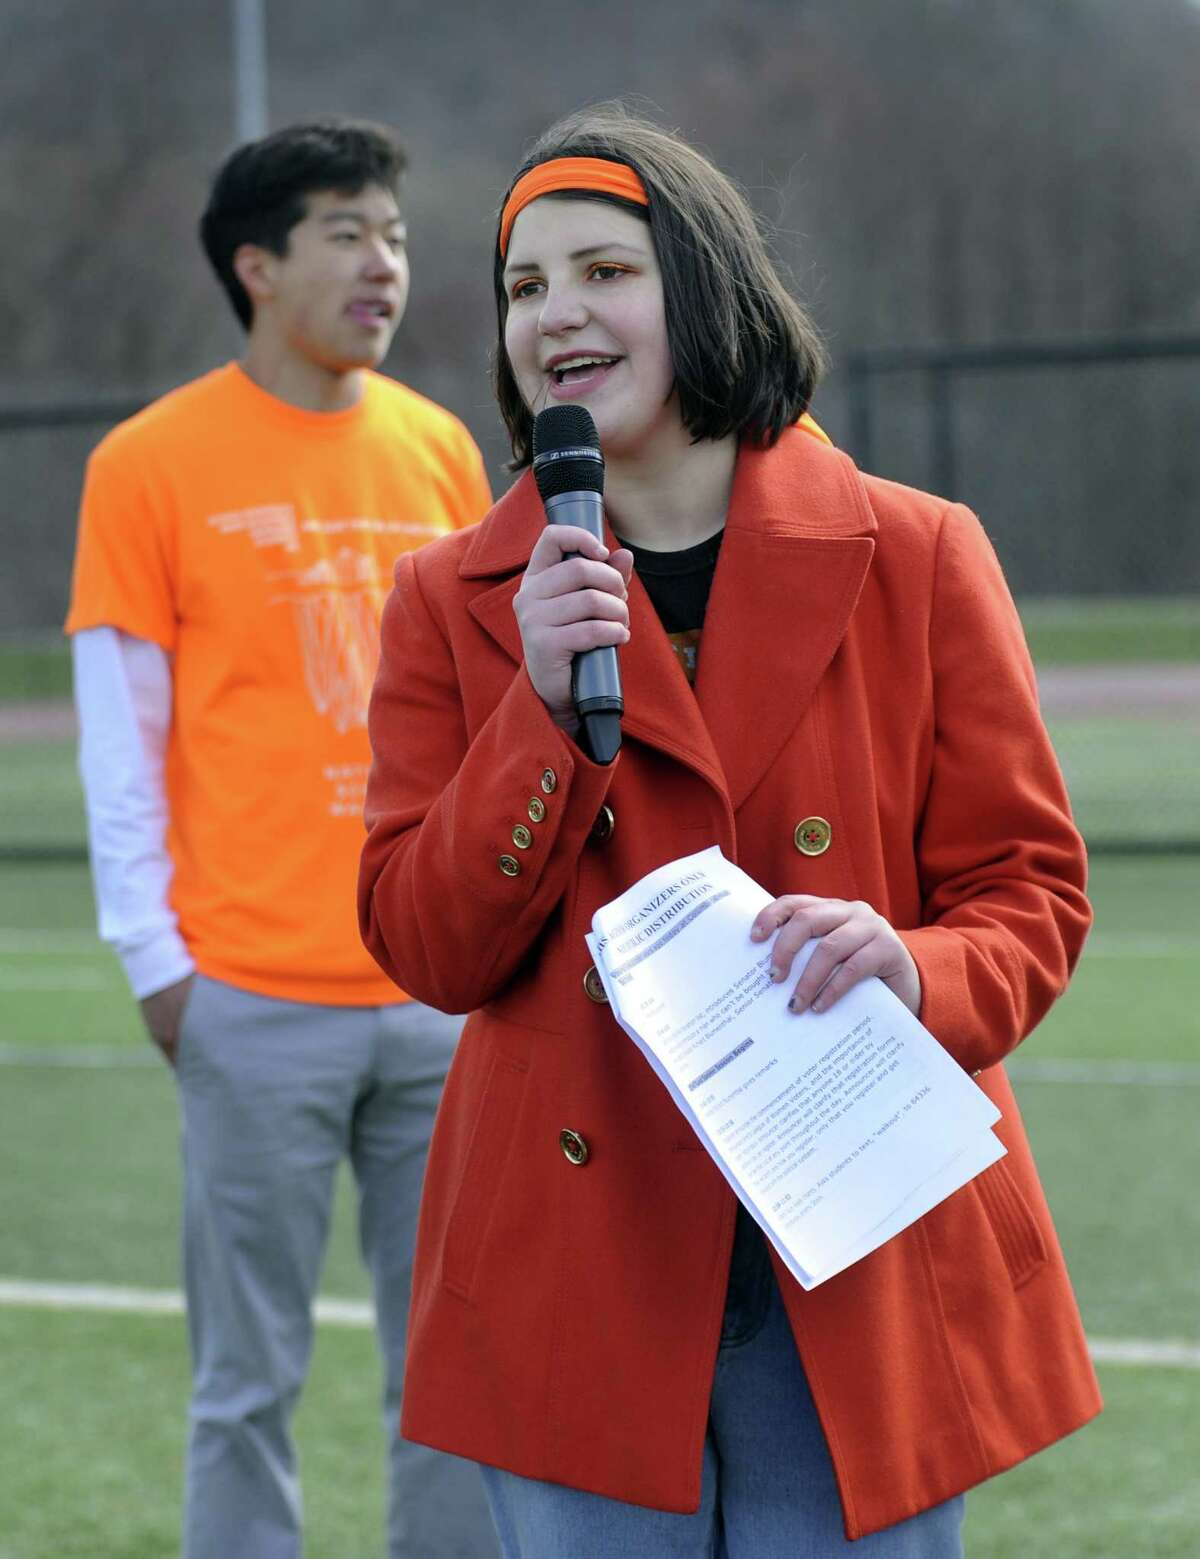 Lane Murdock, 16, a Ridgefield High School student and the founder of The National School Walkout, speaks at the Riddgefiel High School event, Friday, April 20, 2018. Left is Paul Kim, 17, also an organizor.